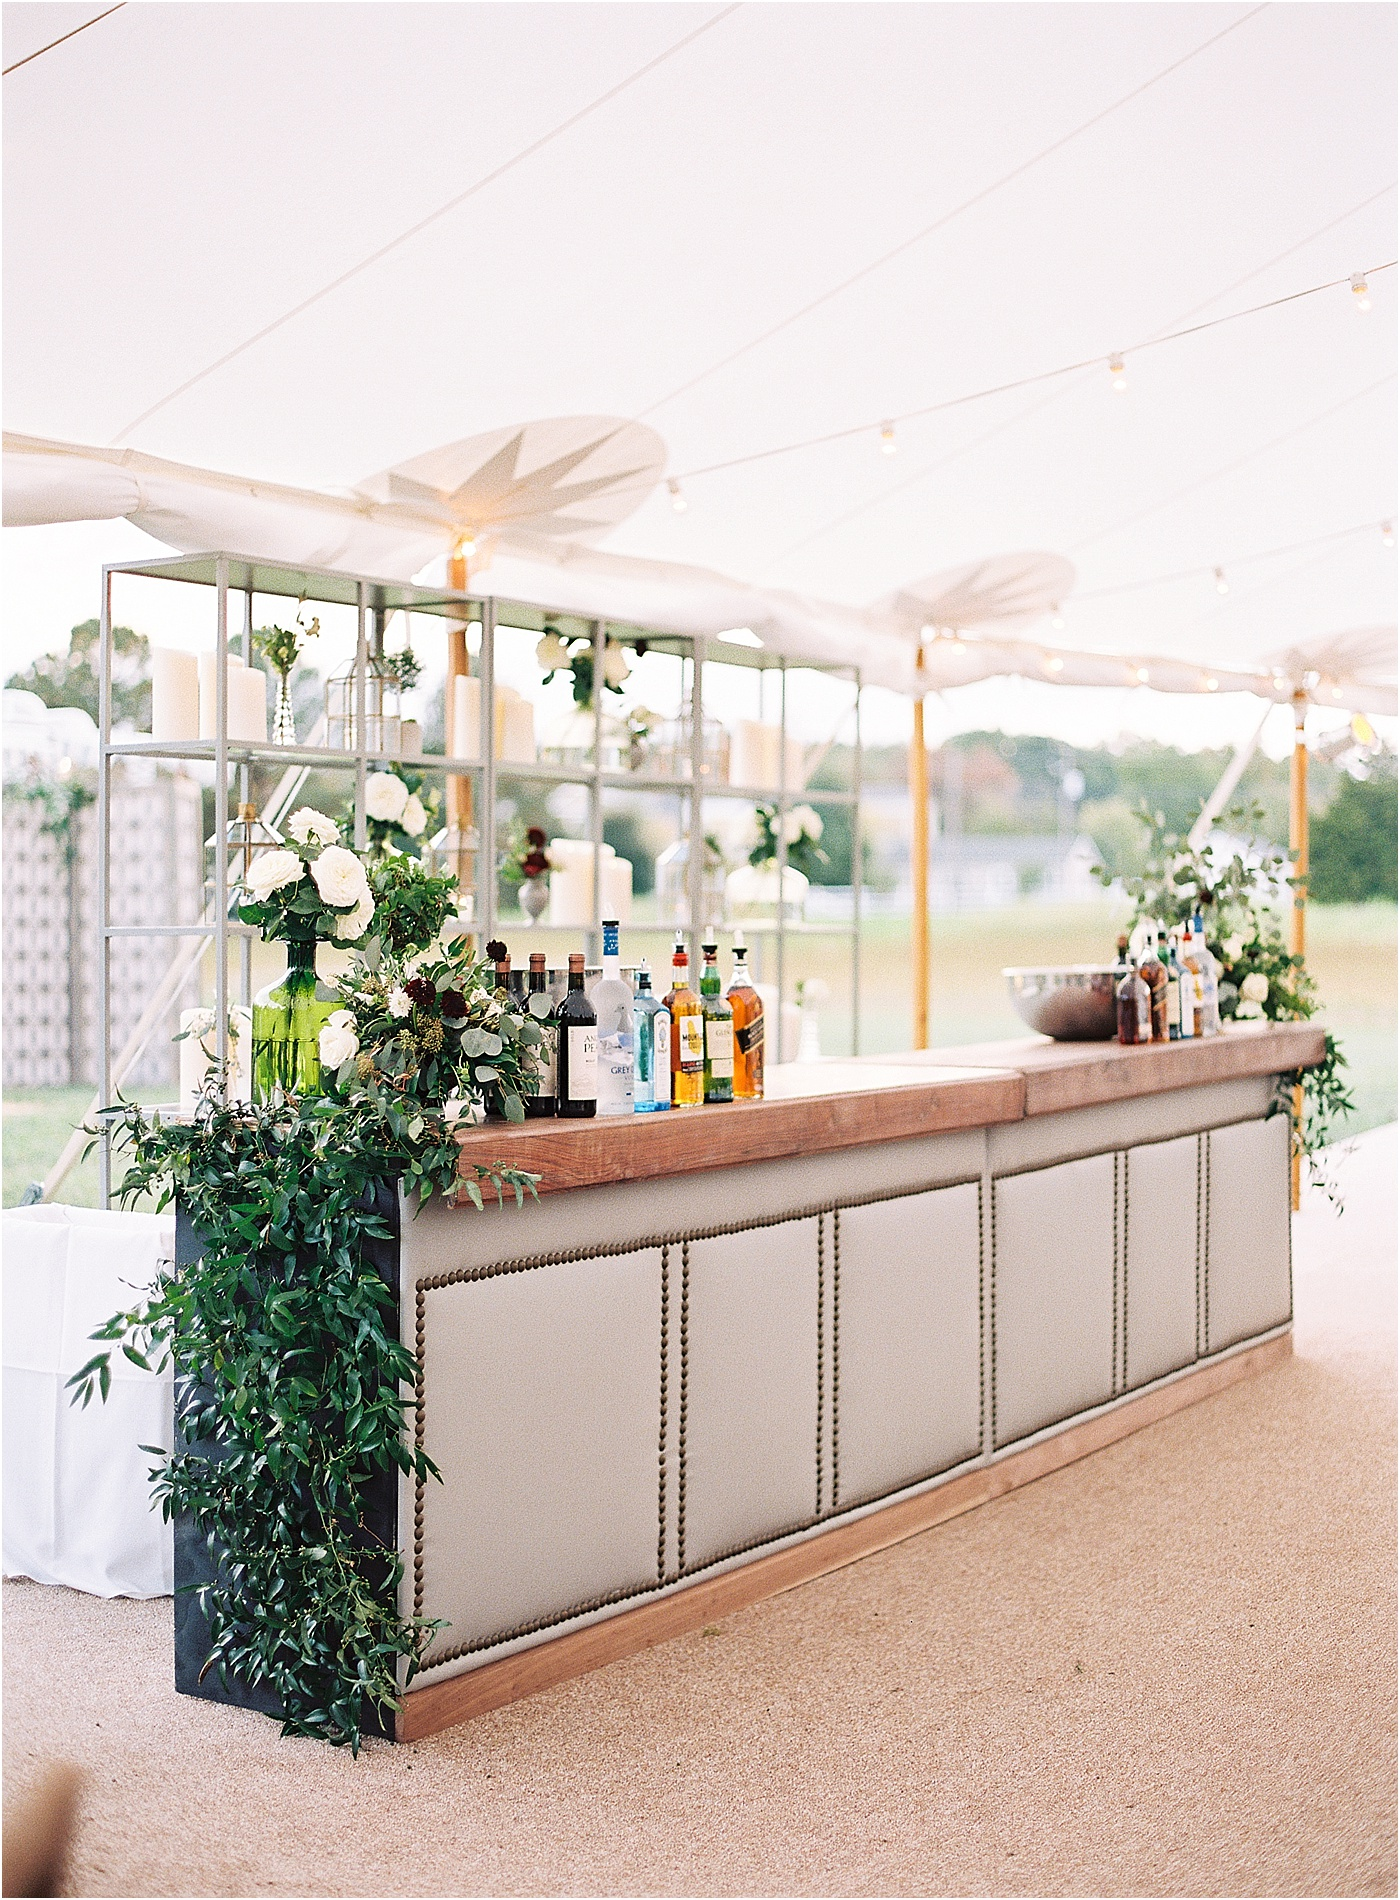 wedding bar greenery Chesapeake bay Napa valley theme